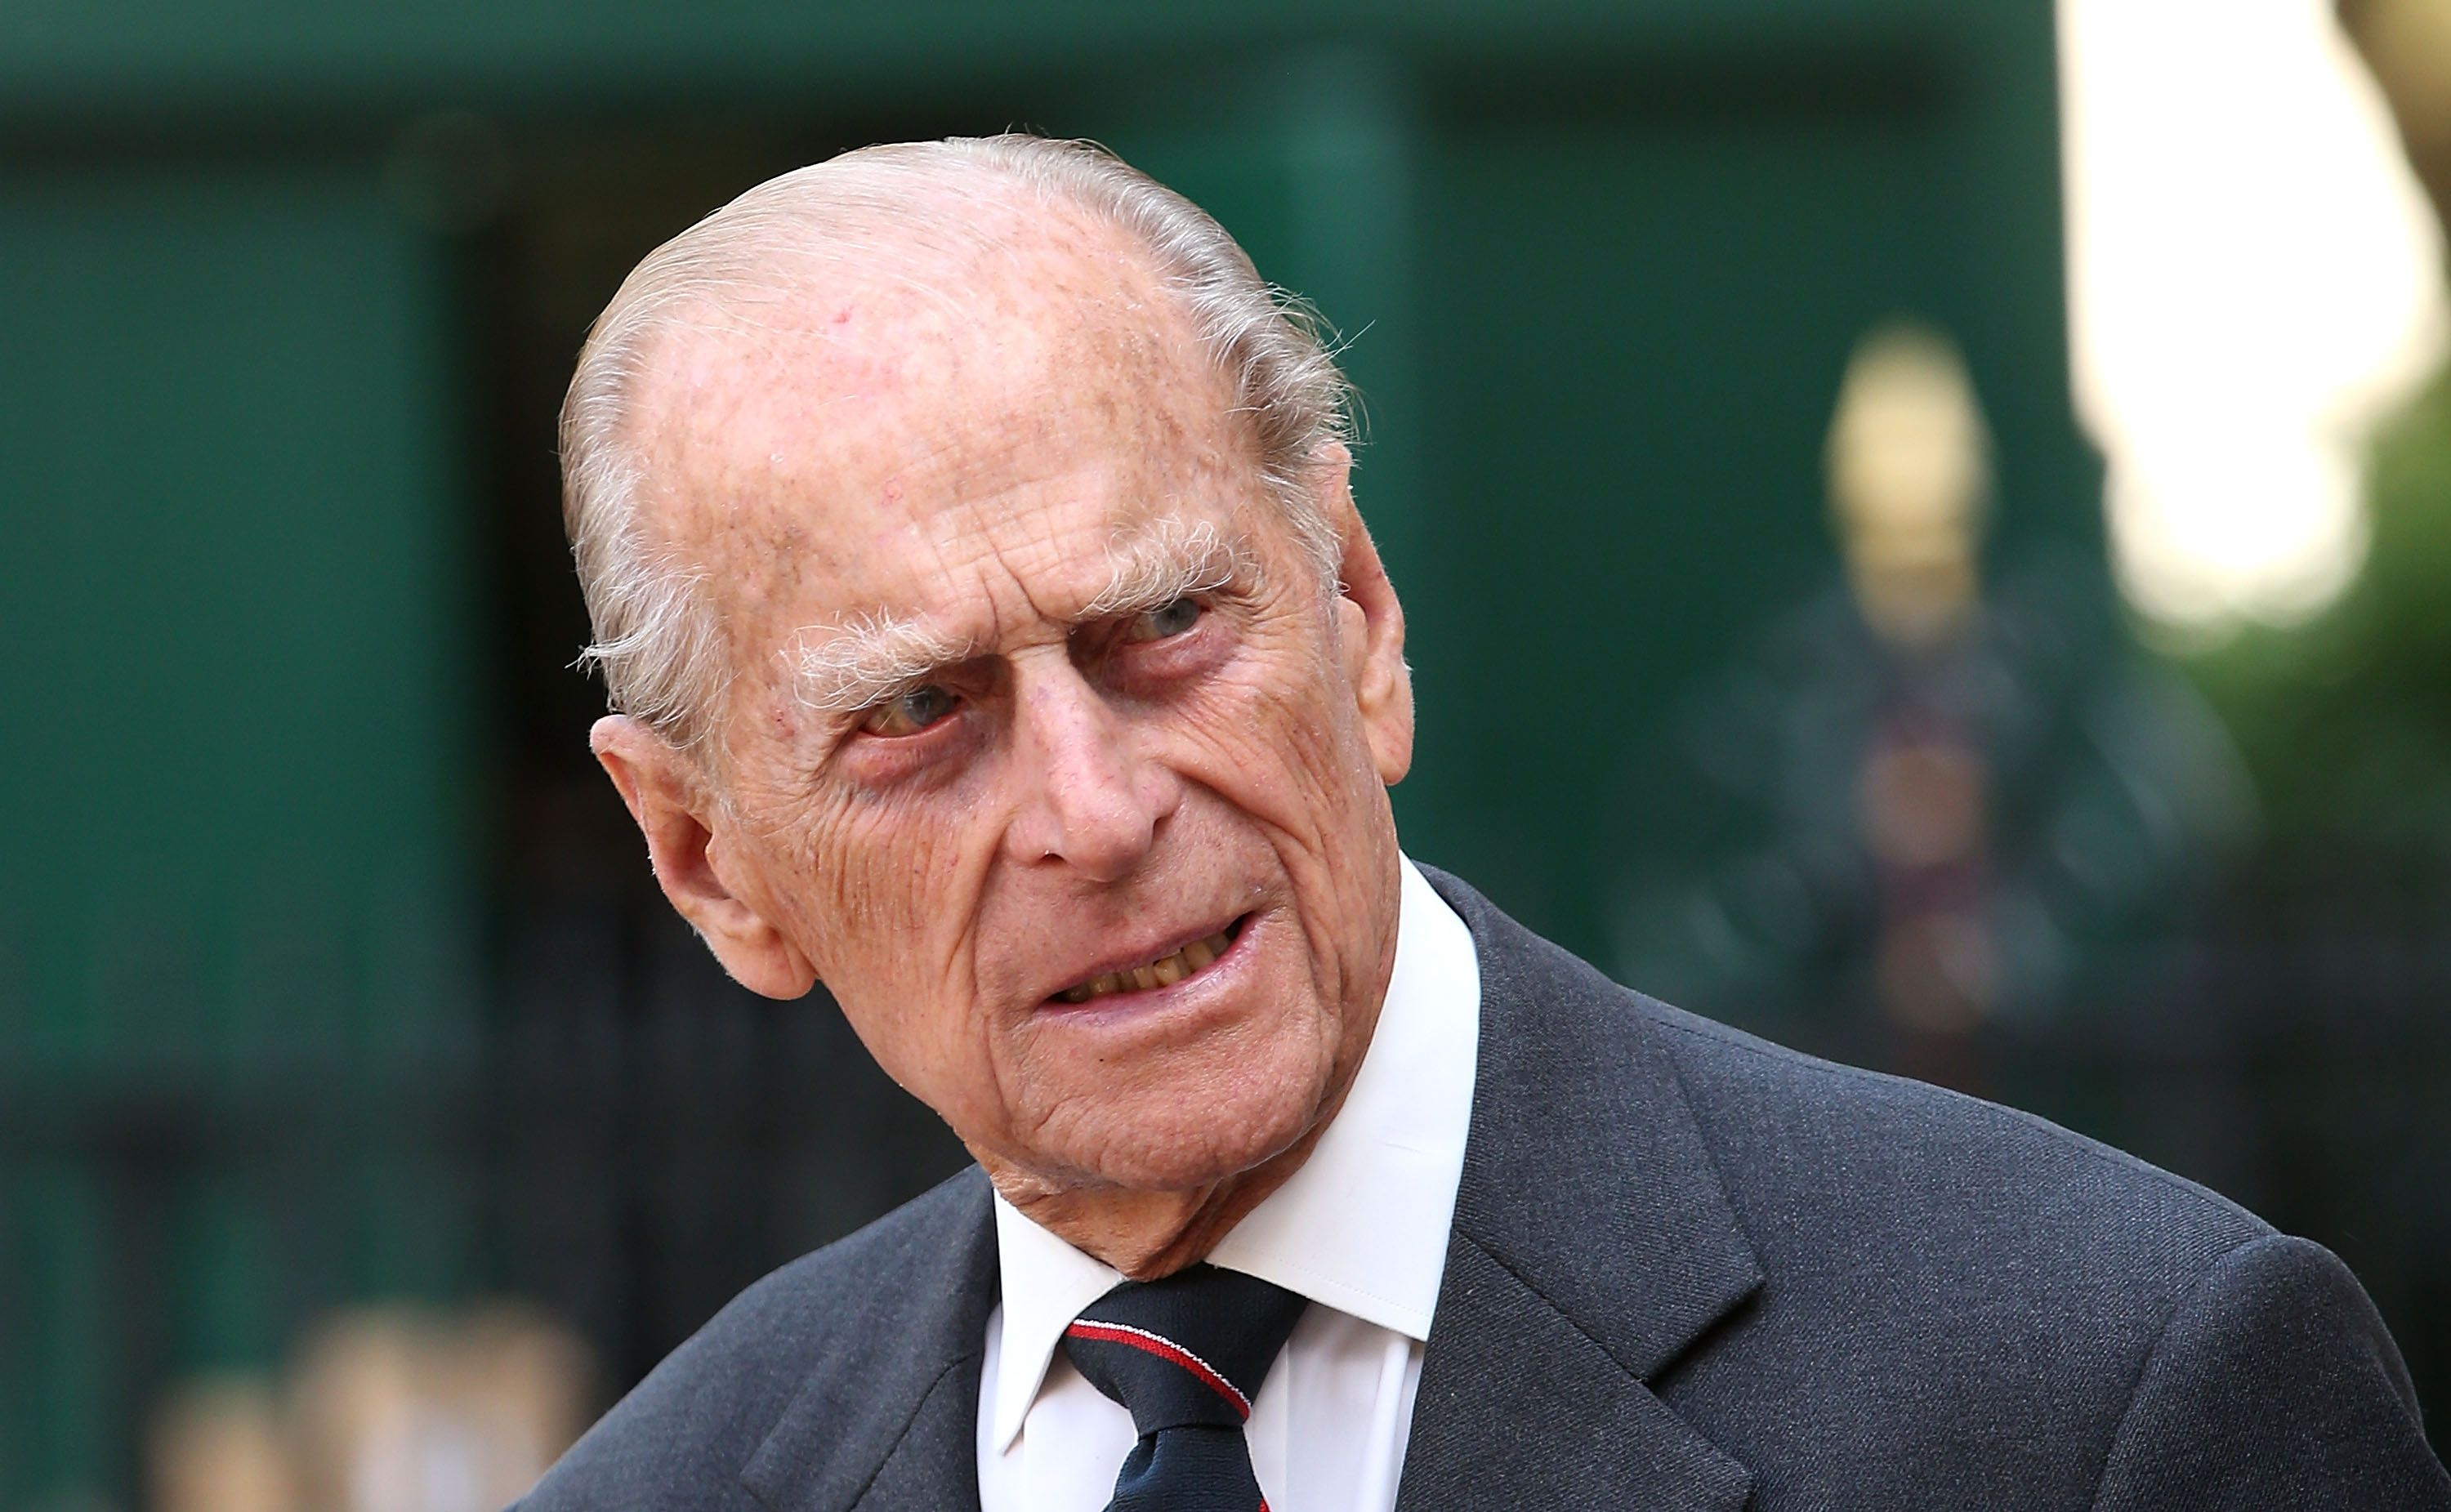 Prince Philip during a service of dedication to Admiral Arthur Philip at Westminster Abbey on July 9, 2014 in London, England. | Source: Getty Images